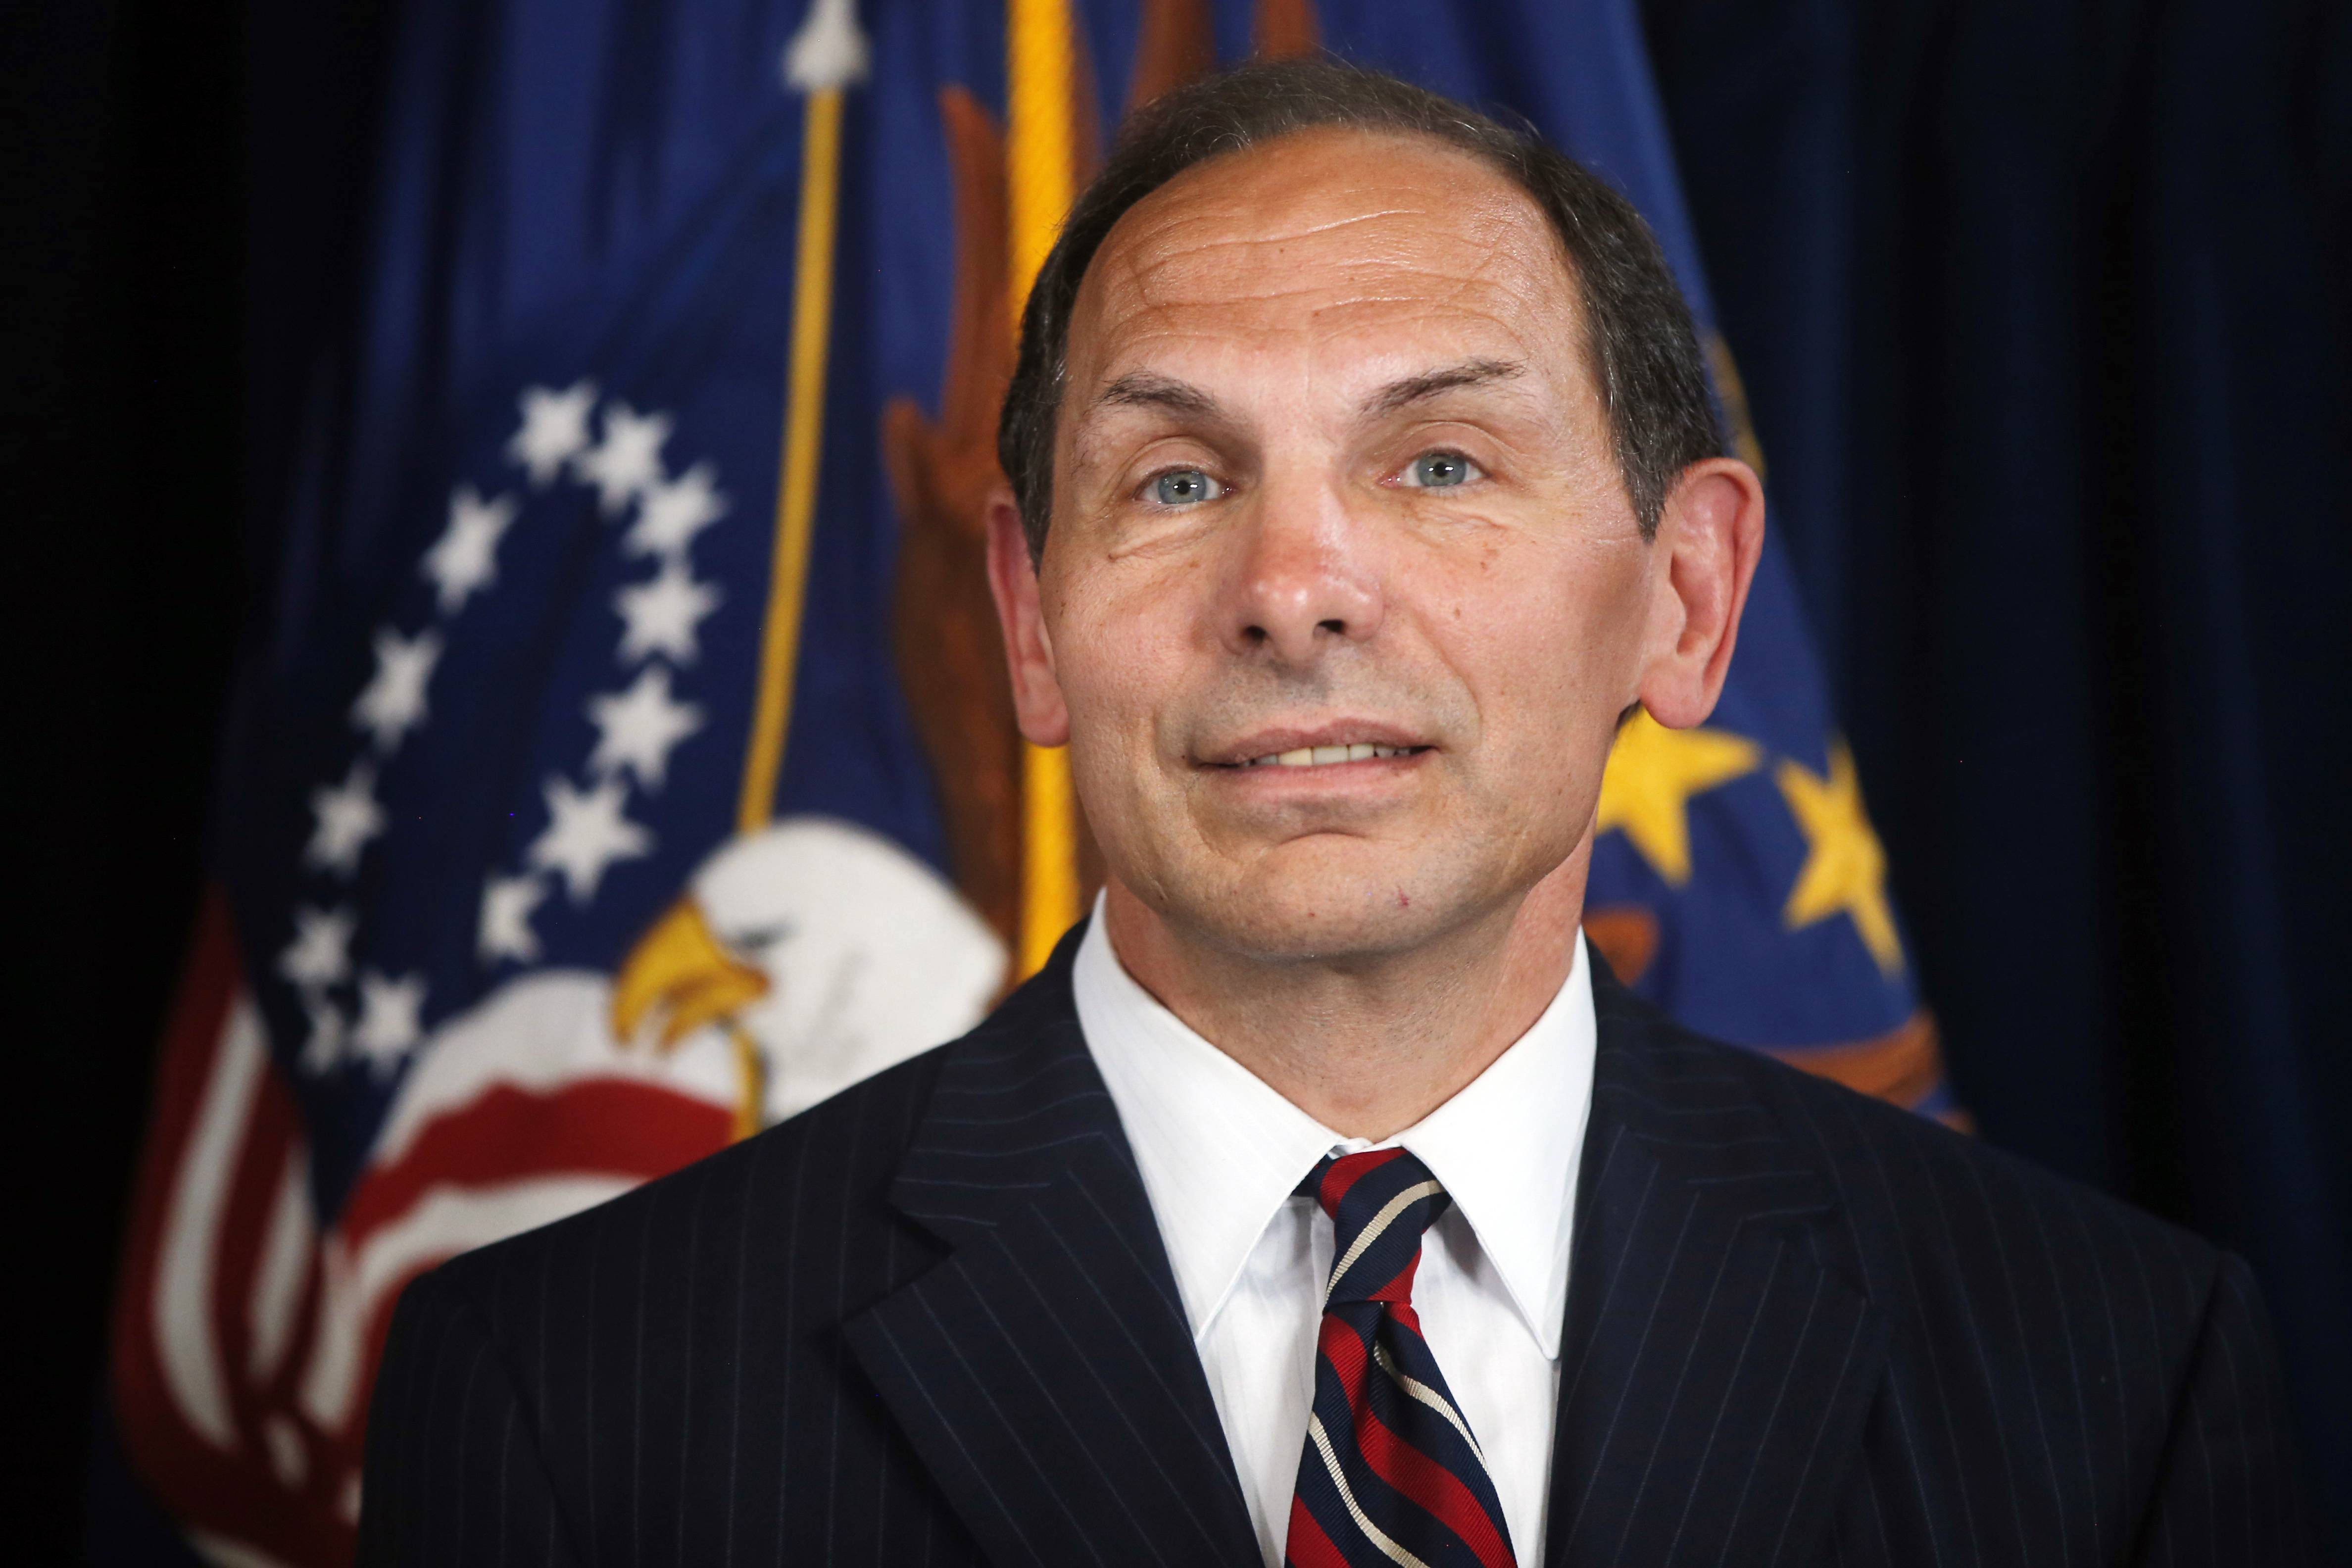 Former Procter and Gamble executive Robert McDonald, President Barack Obama's nominee as the next Veterans Affairs secretary, would succeed Eric Shinseki, the retired four-star general who resigned last month as the scope of the issues at veterans' hospitals became apparent.